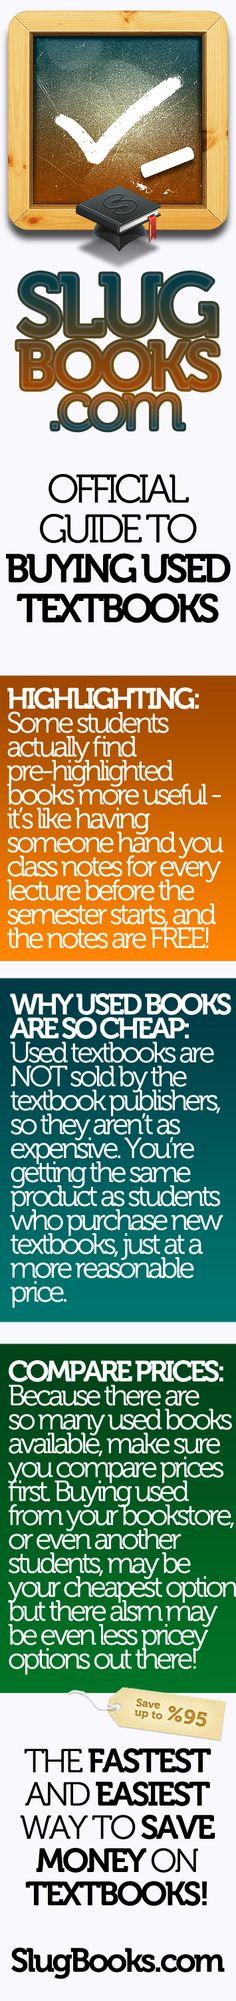 used textbooks guide - college used textbooks